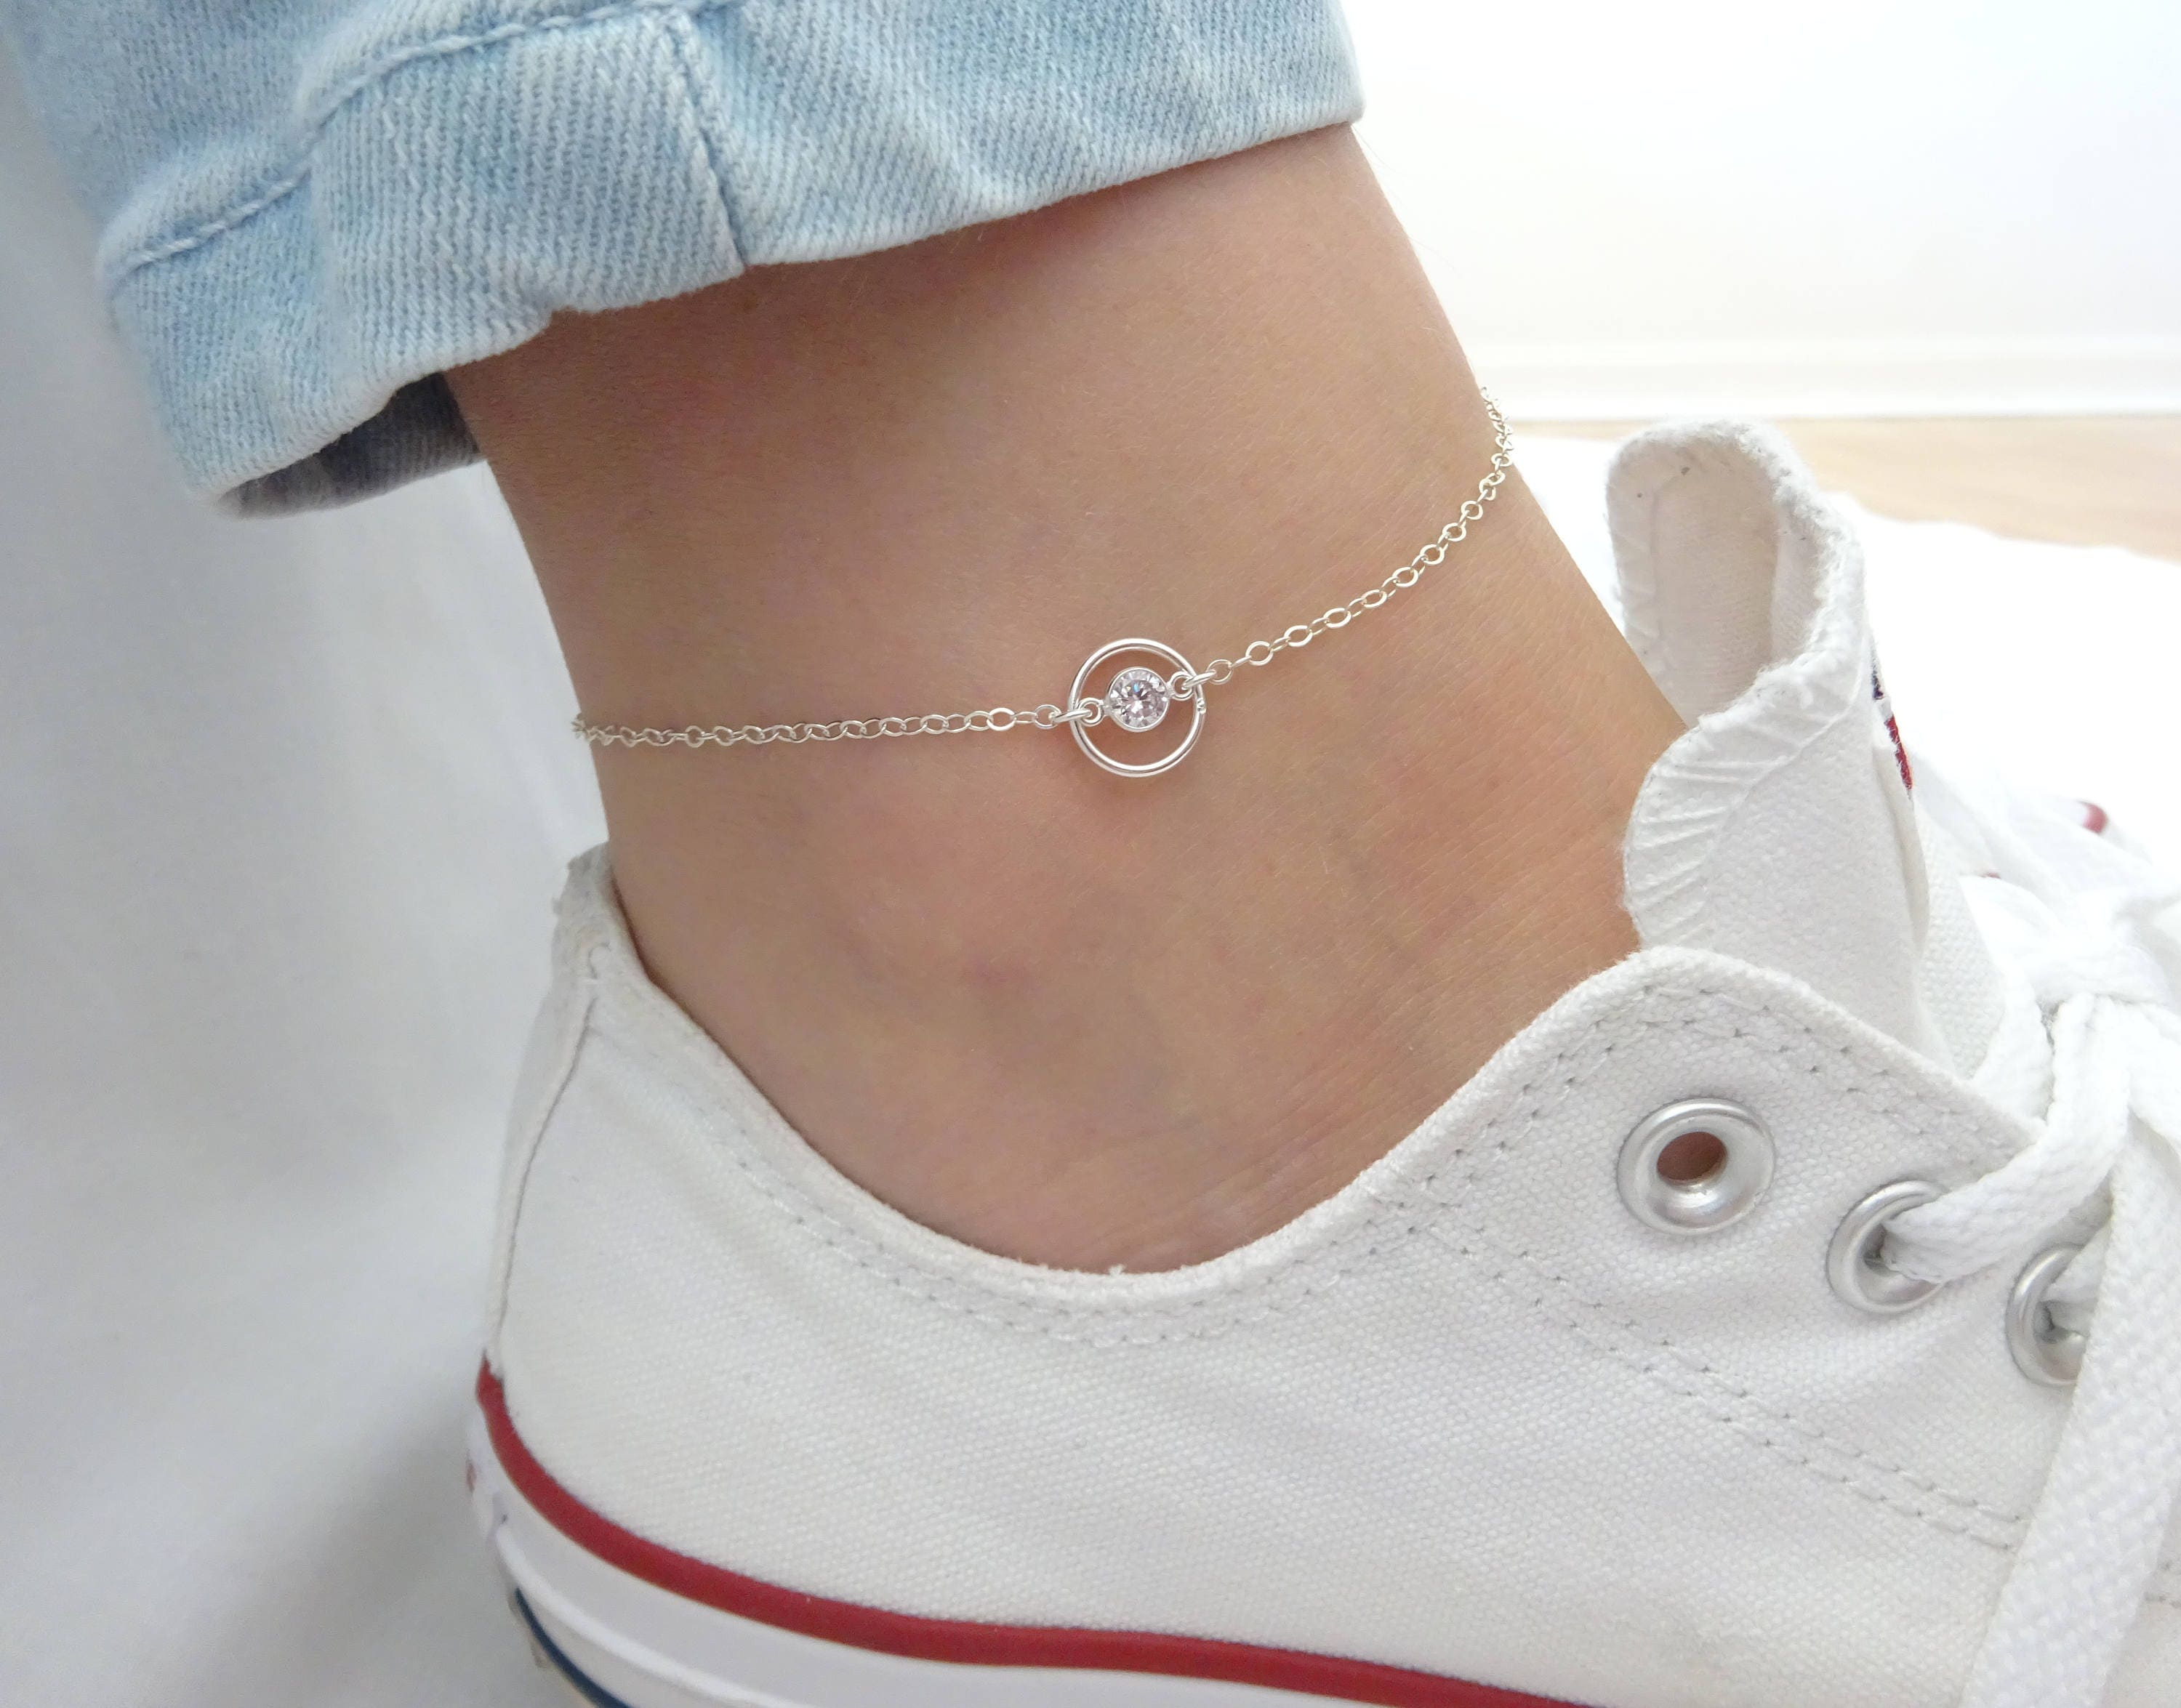 group anklets silver cute from in feet aliexpress cubic accessories jewelry bracelet bow sterling item plated alibaba zirconia anklet com on